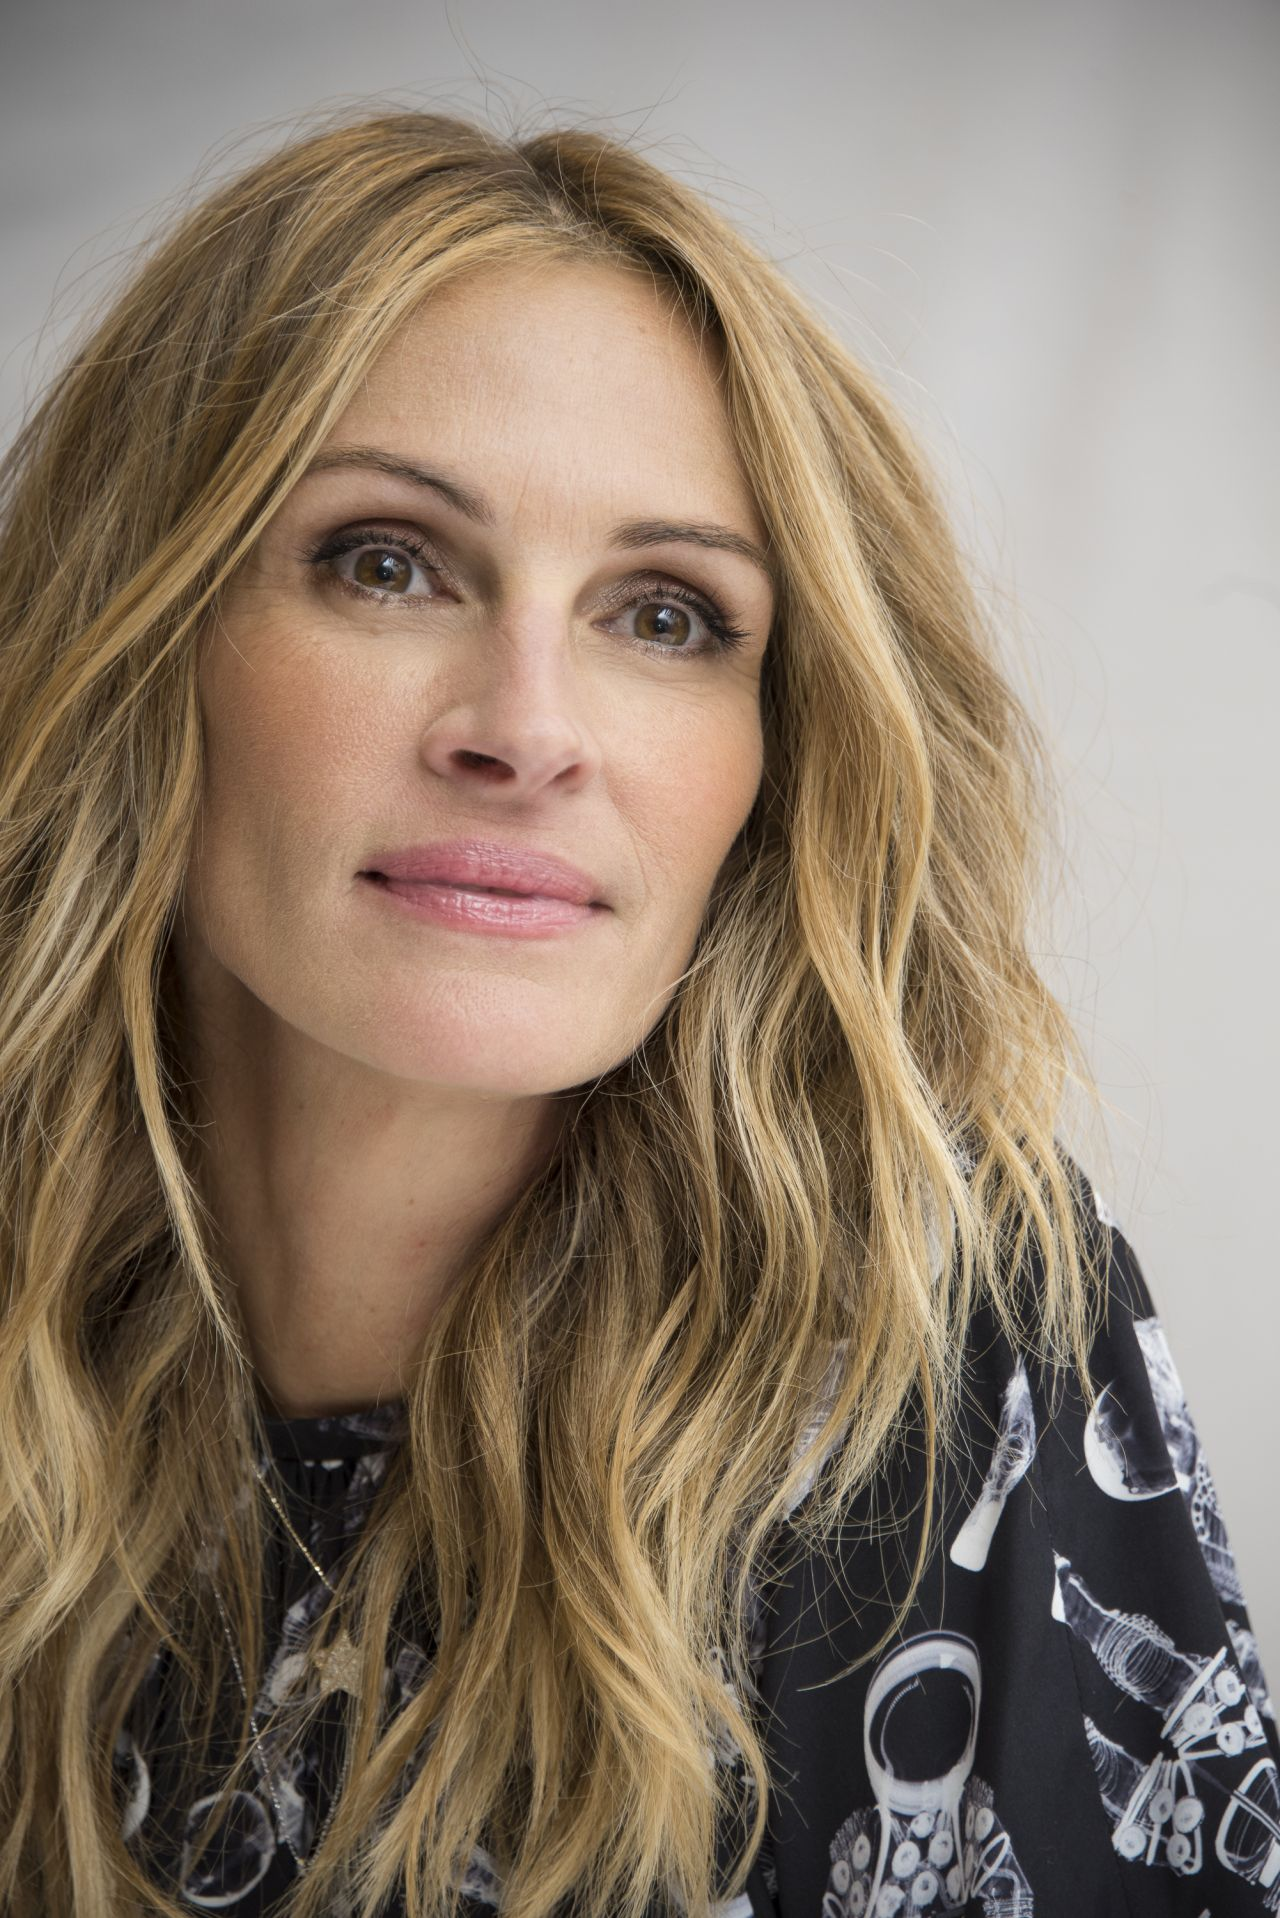 Julia Roberts Wonder Press Conference In London 11052017